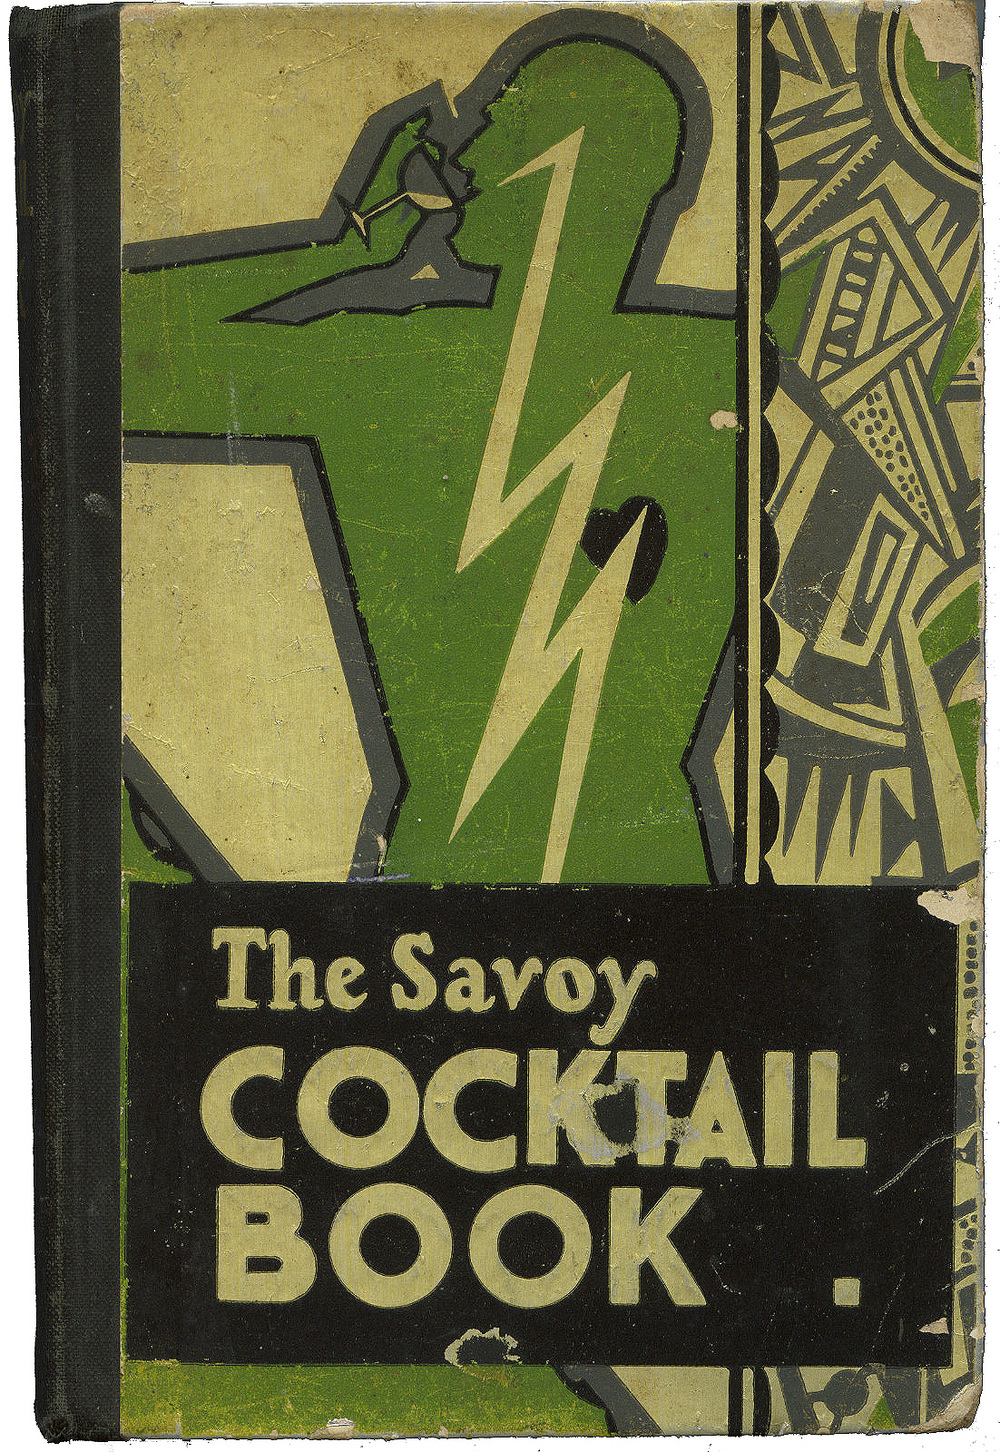 The Savoy Cocktail Book 1930